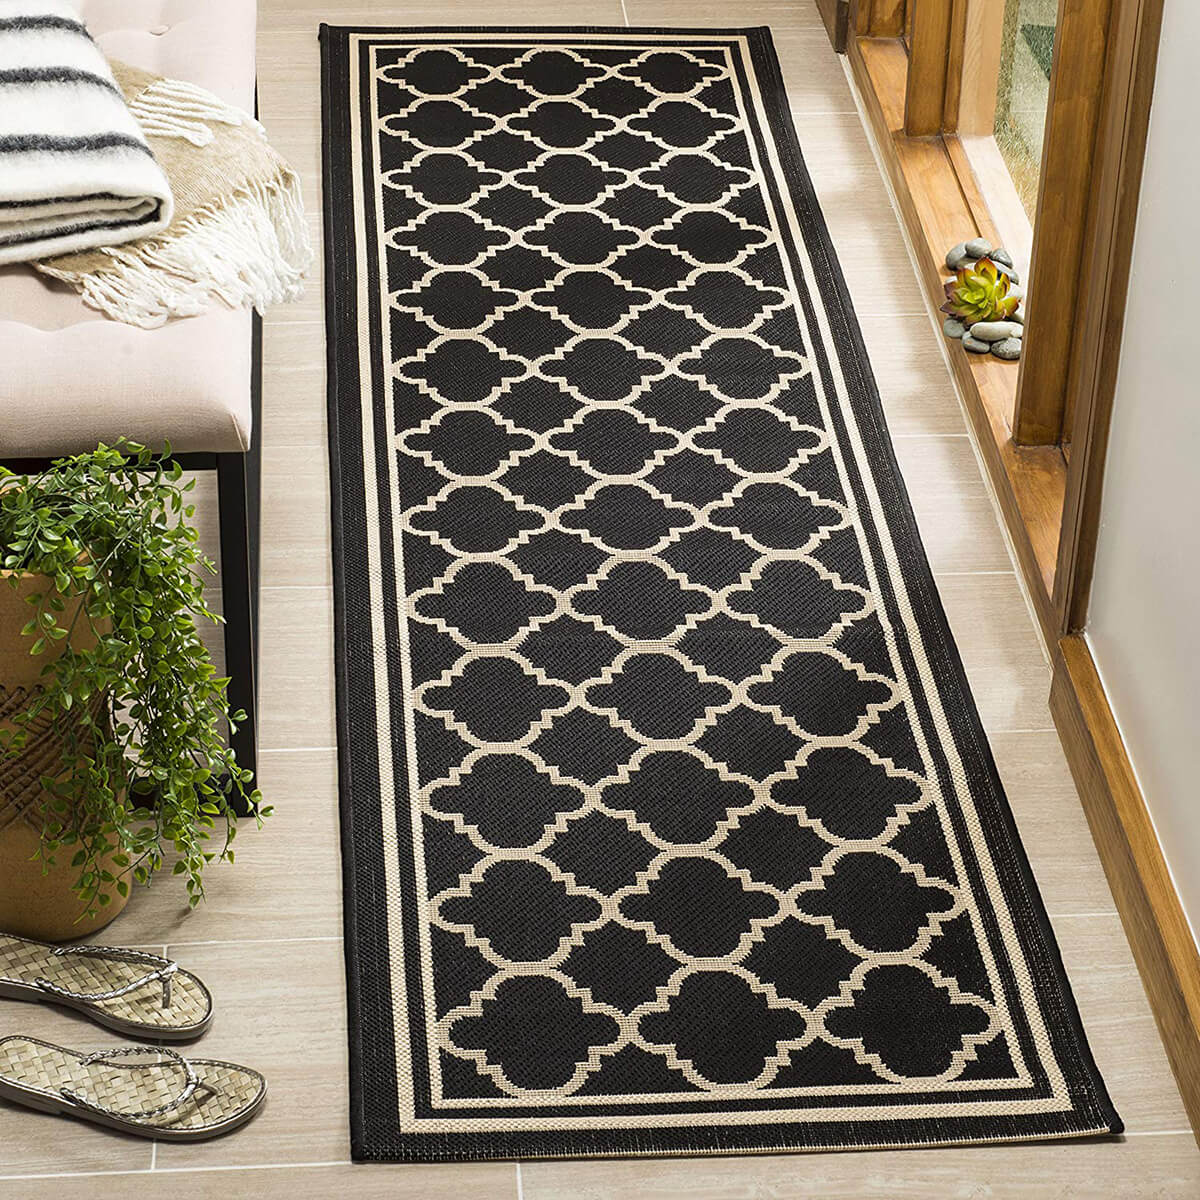 Classy and Classic Rug in Black and Ivory